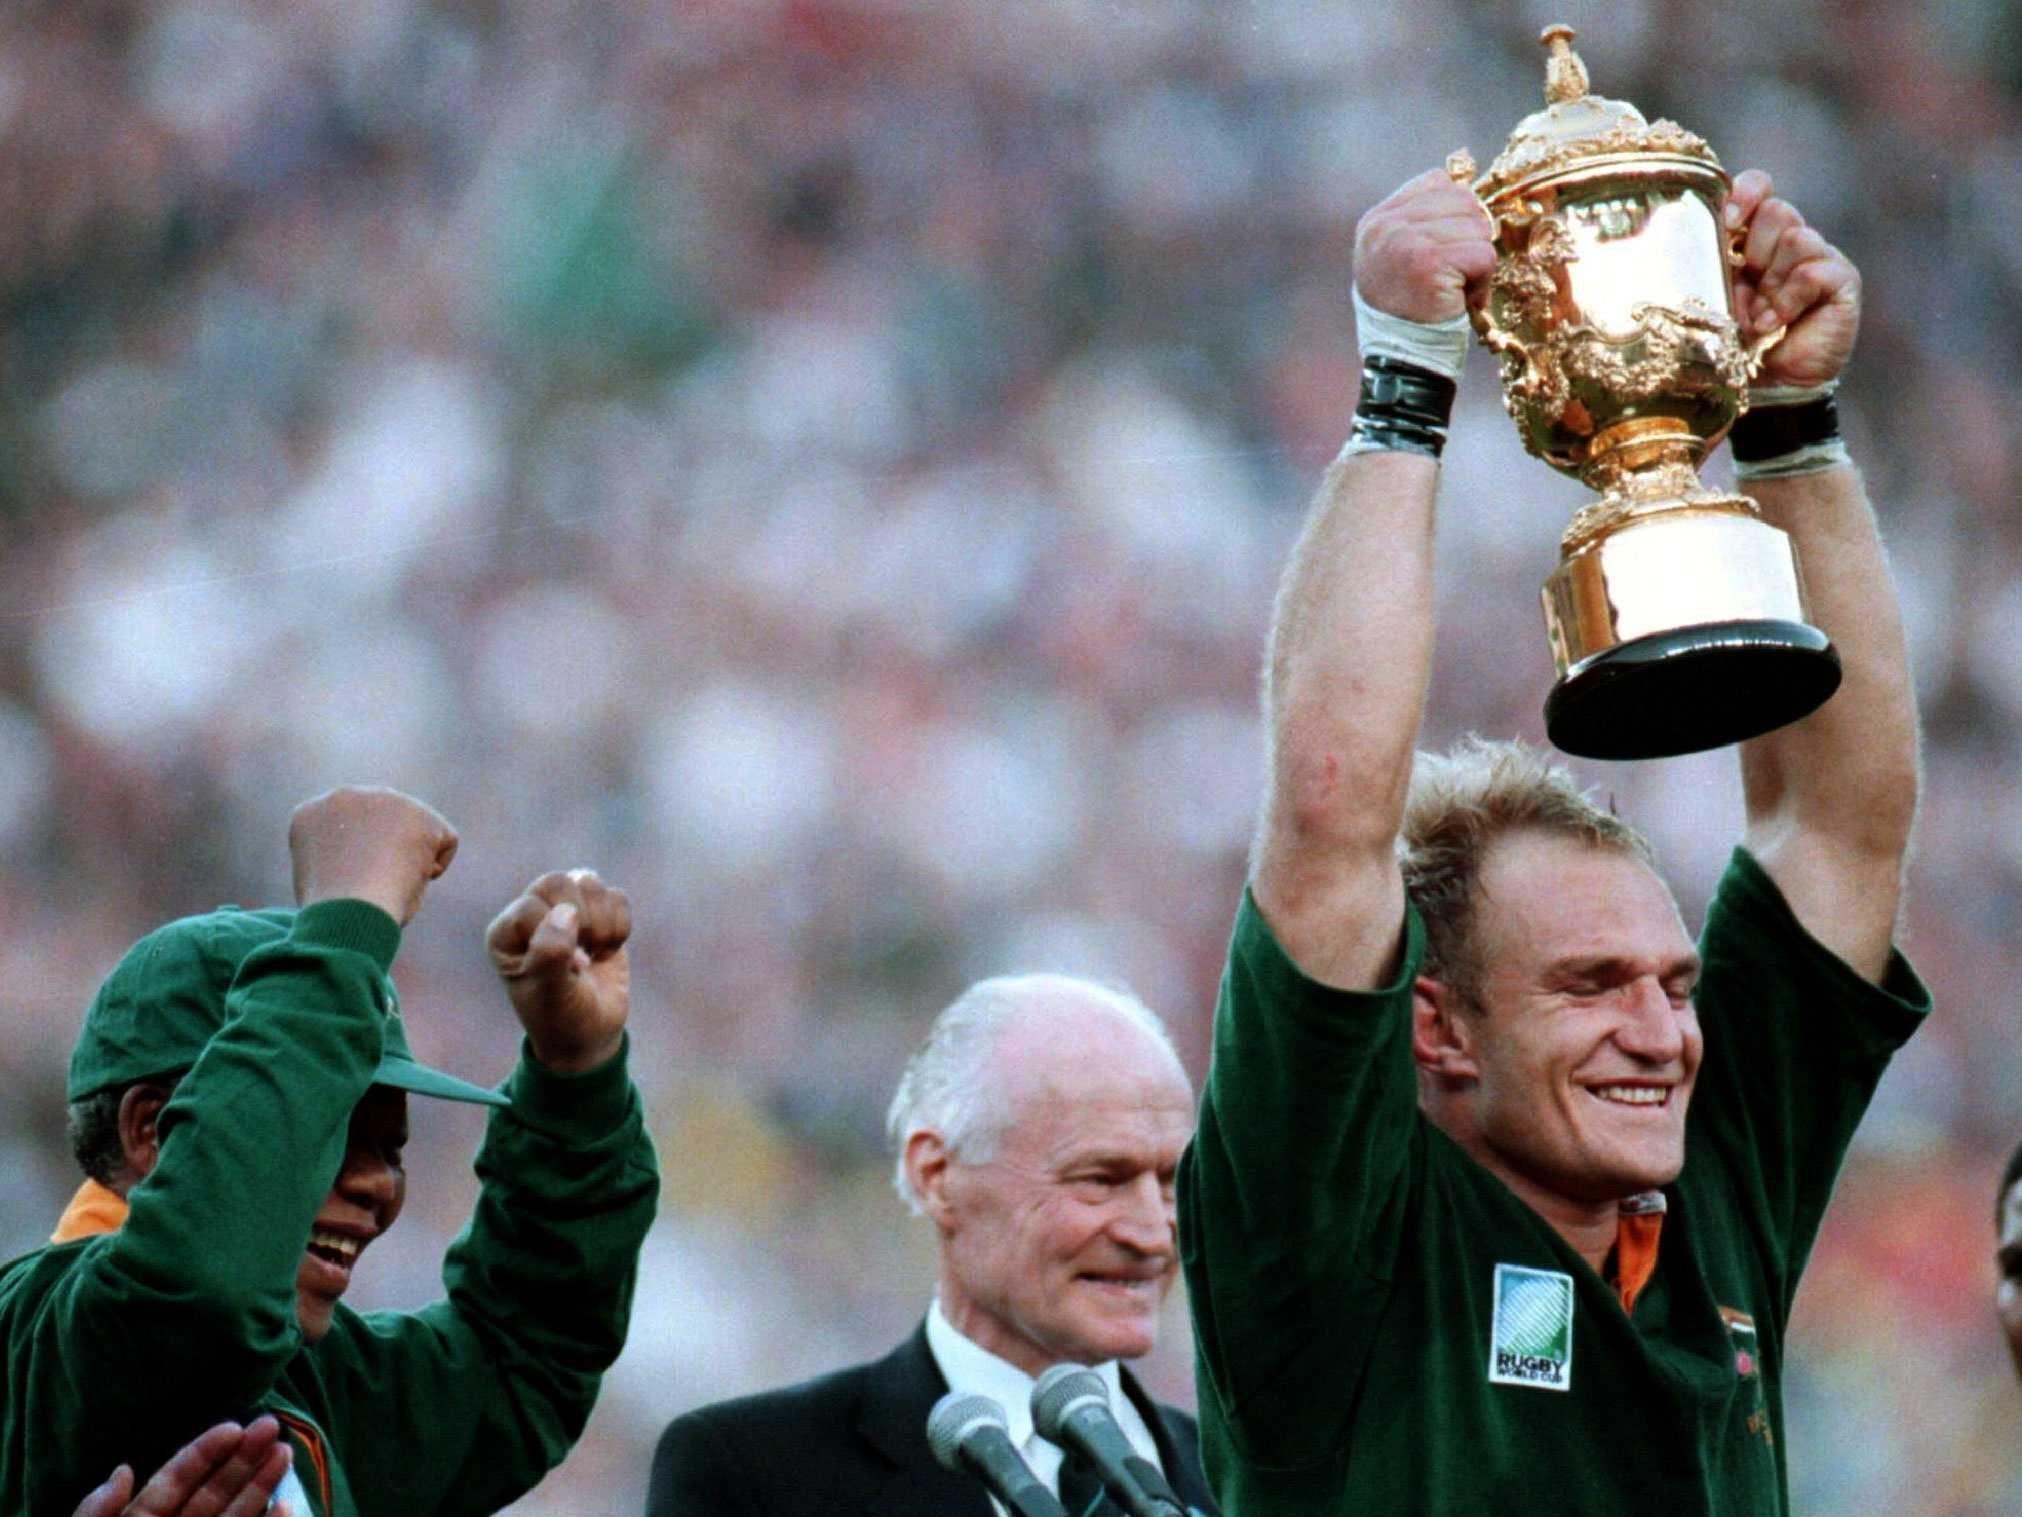 This Day In History Jun 24 1995 Mandela Cheers On South African Rugby Team Http Dingeengoete Blogspot Com 2013 06 T South African Rugby Rugby Team Rugby